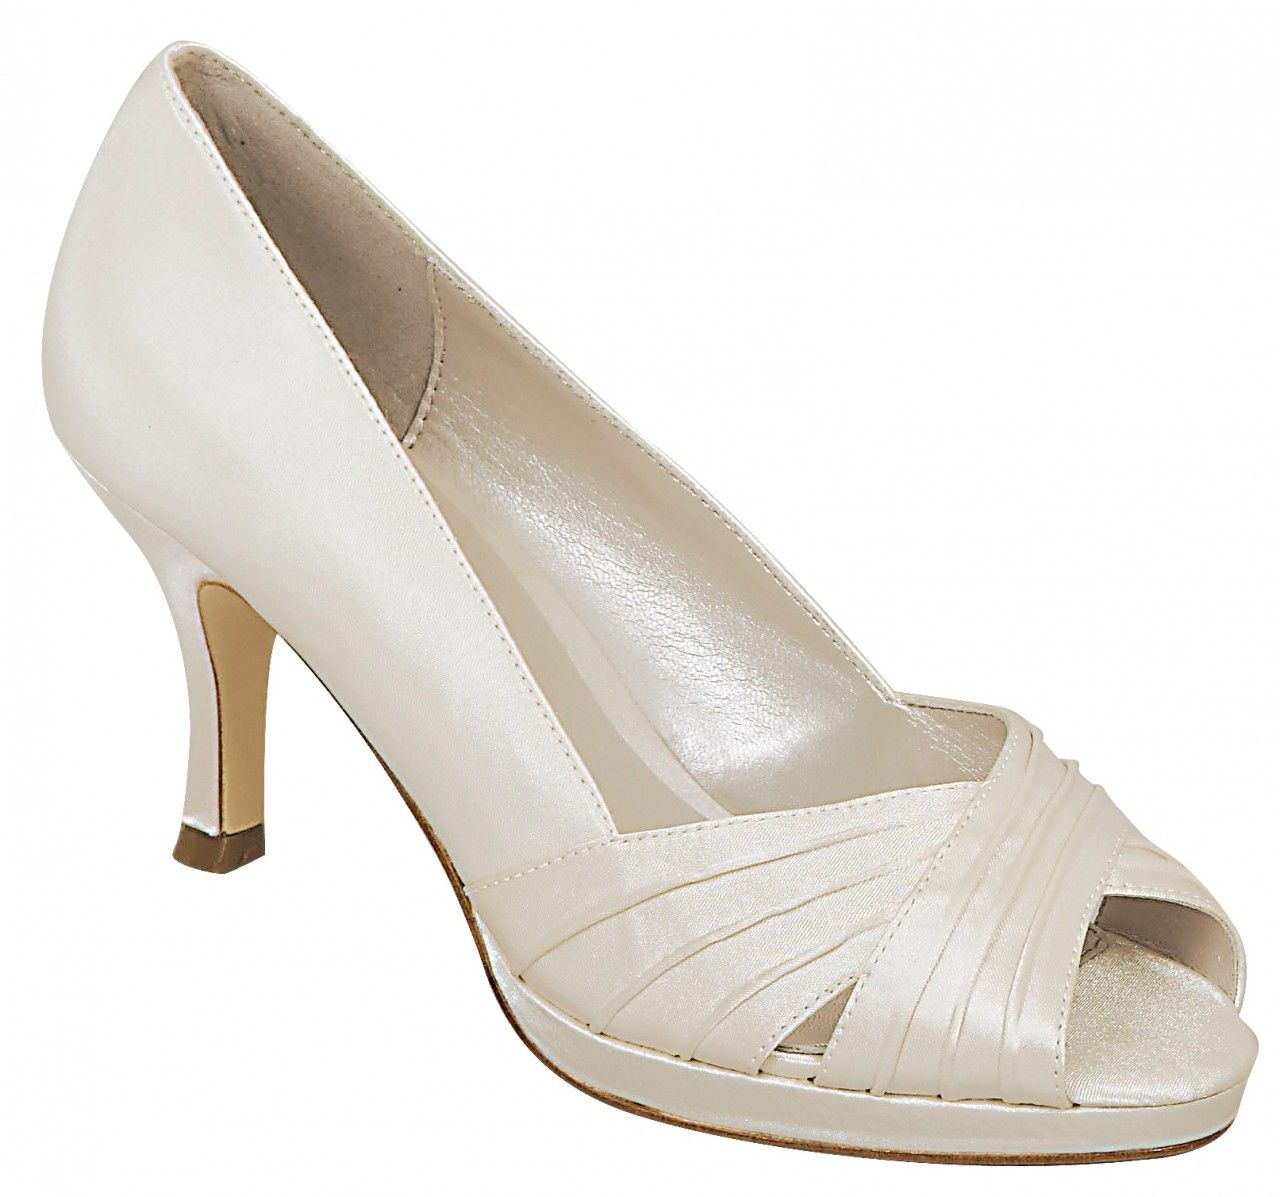 Viki Ivory 155 Mid Heel Platform An Elegant Peep Toe Platform Heel With Pleated Detail Made Of High Discount Womens Shoes Cheap Womens Shoes Ivory Shoes